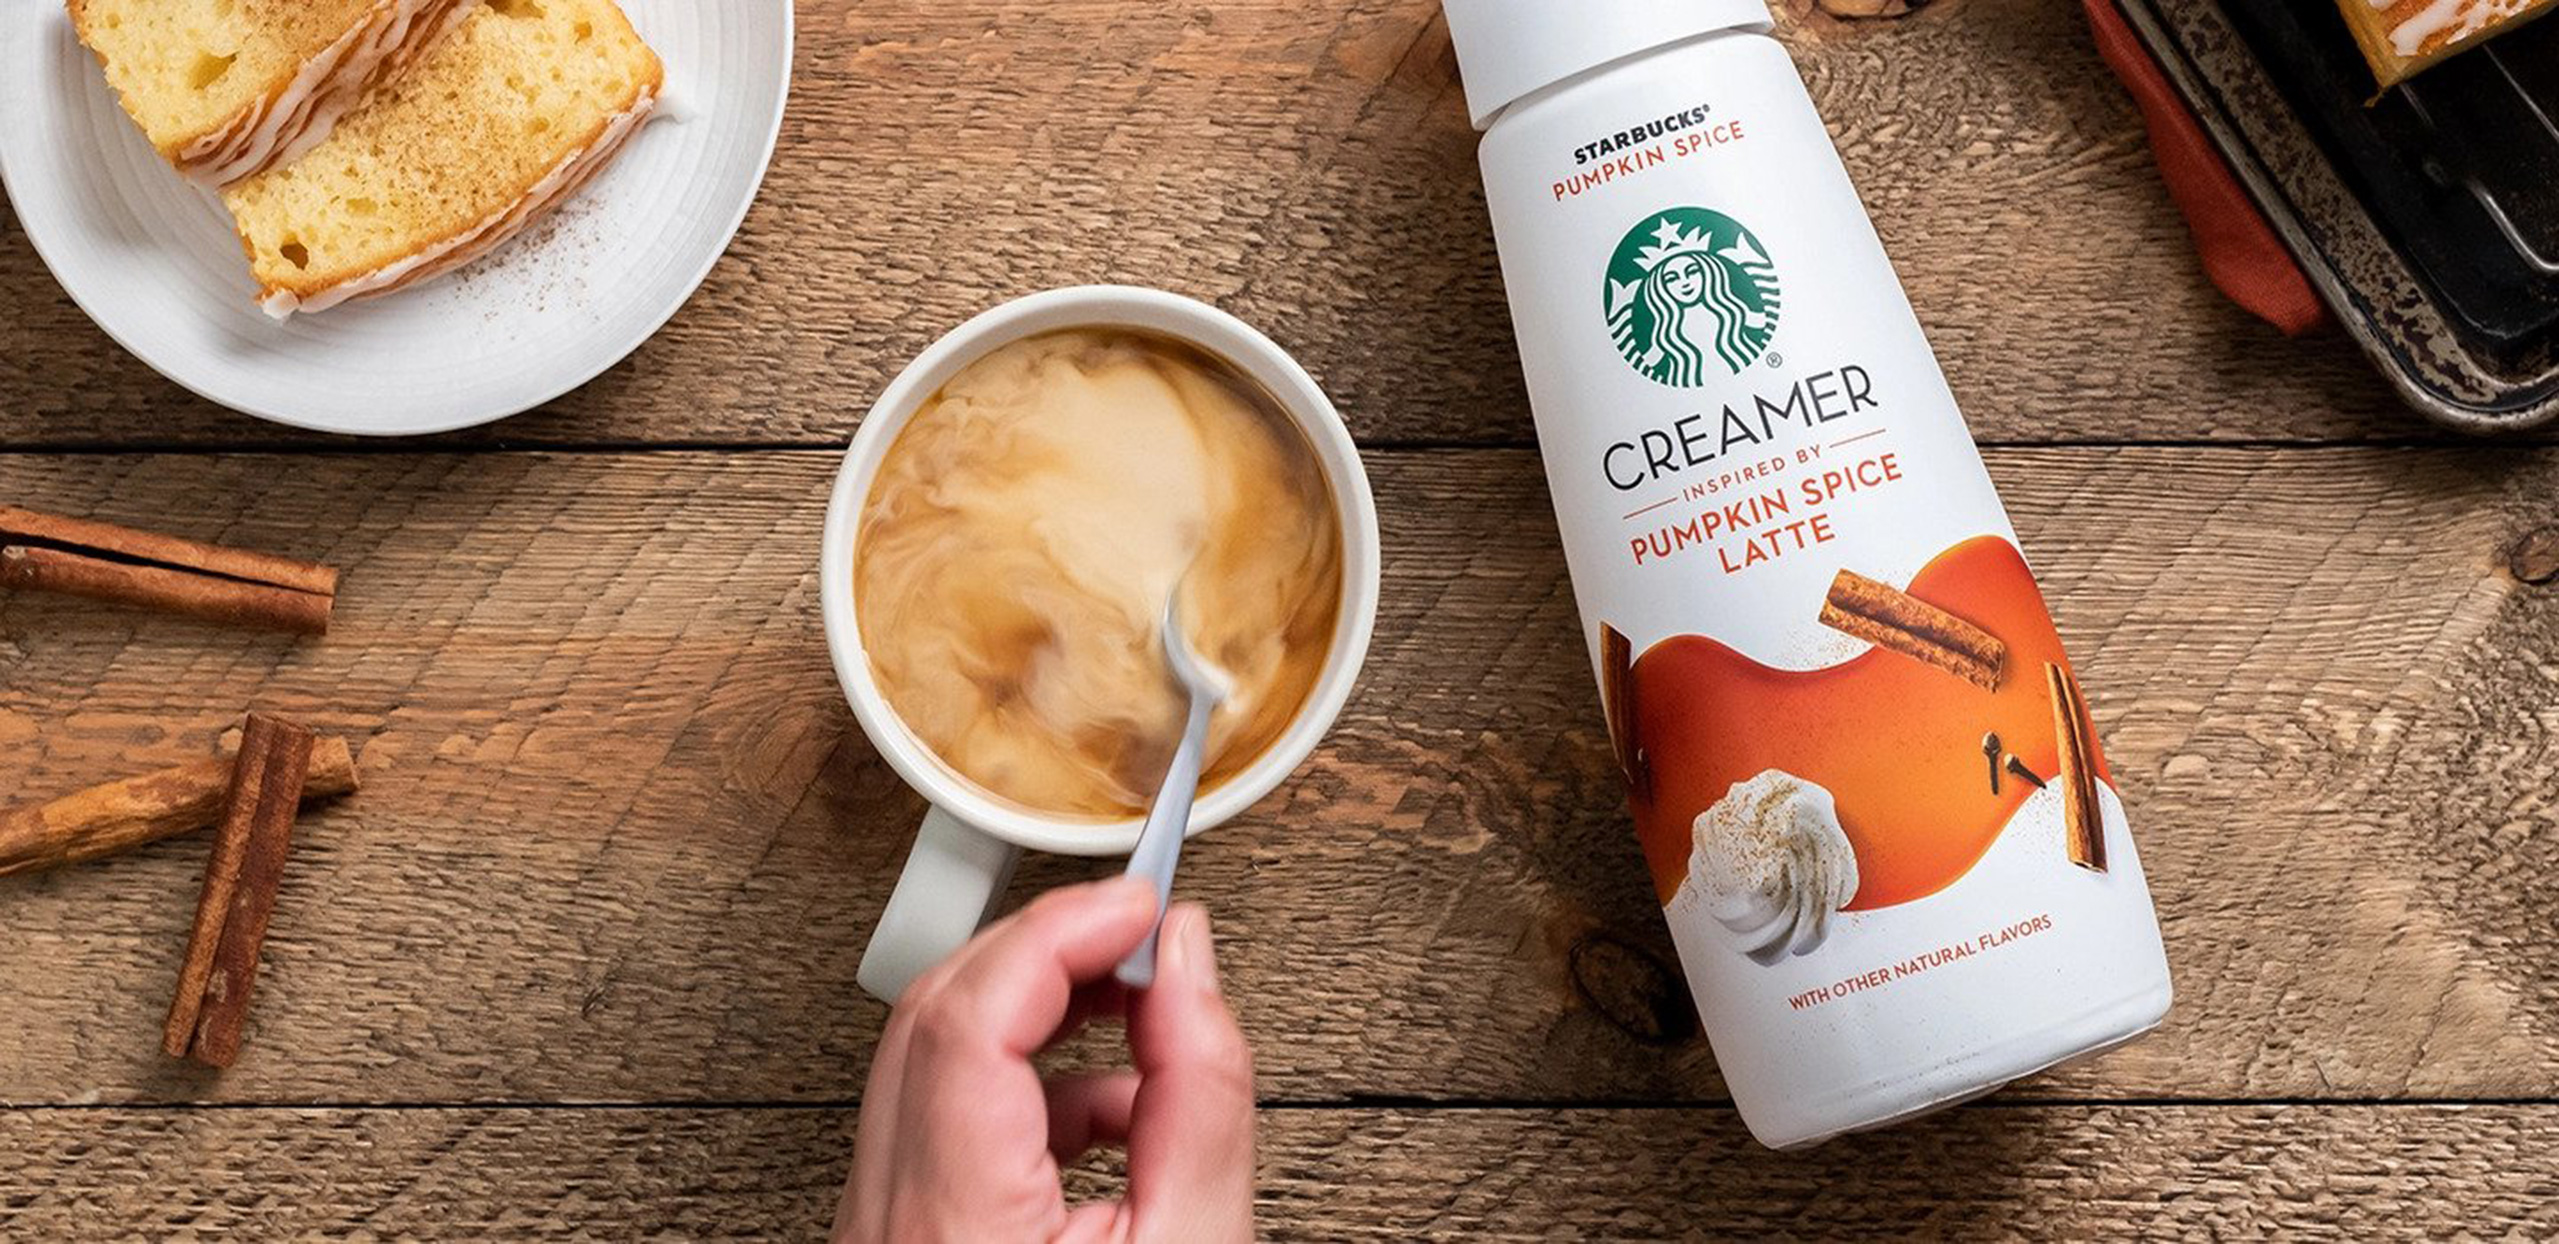 Pumpkin Spice Latte creamer with coffee cup